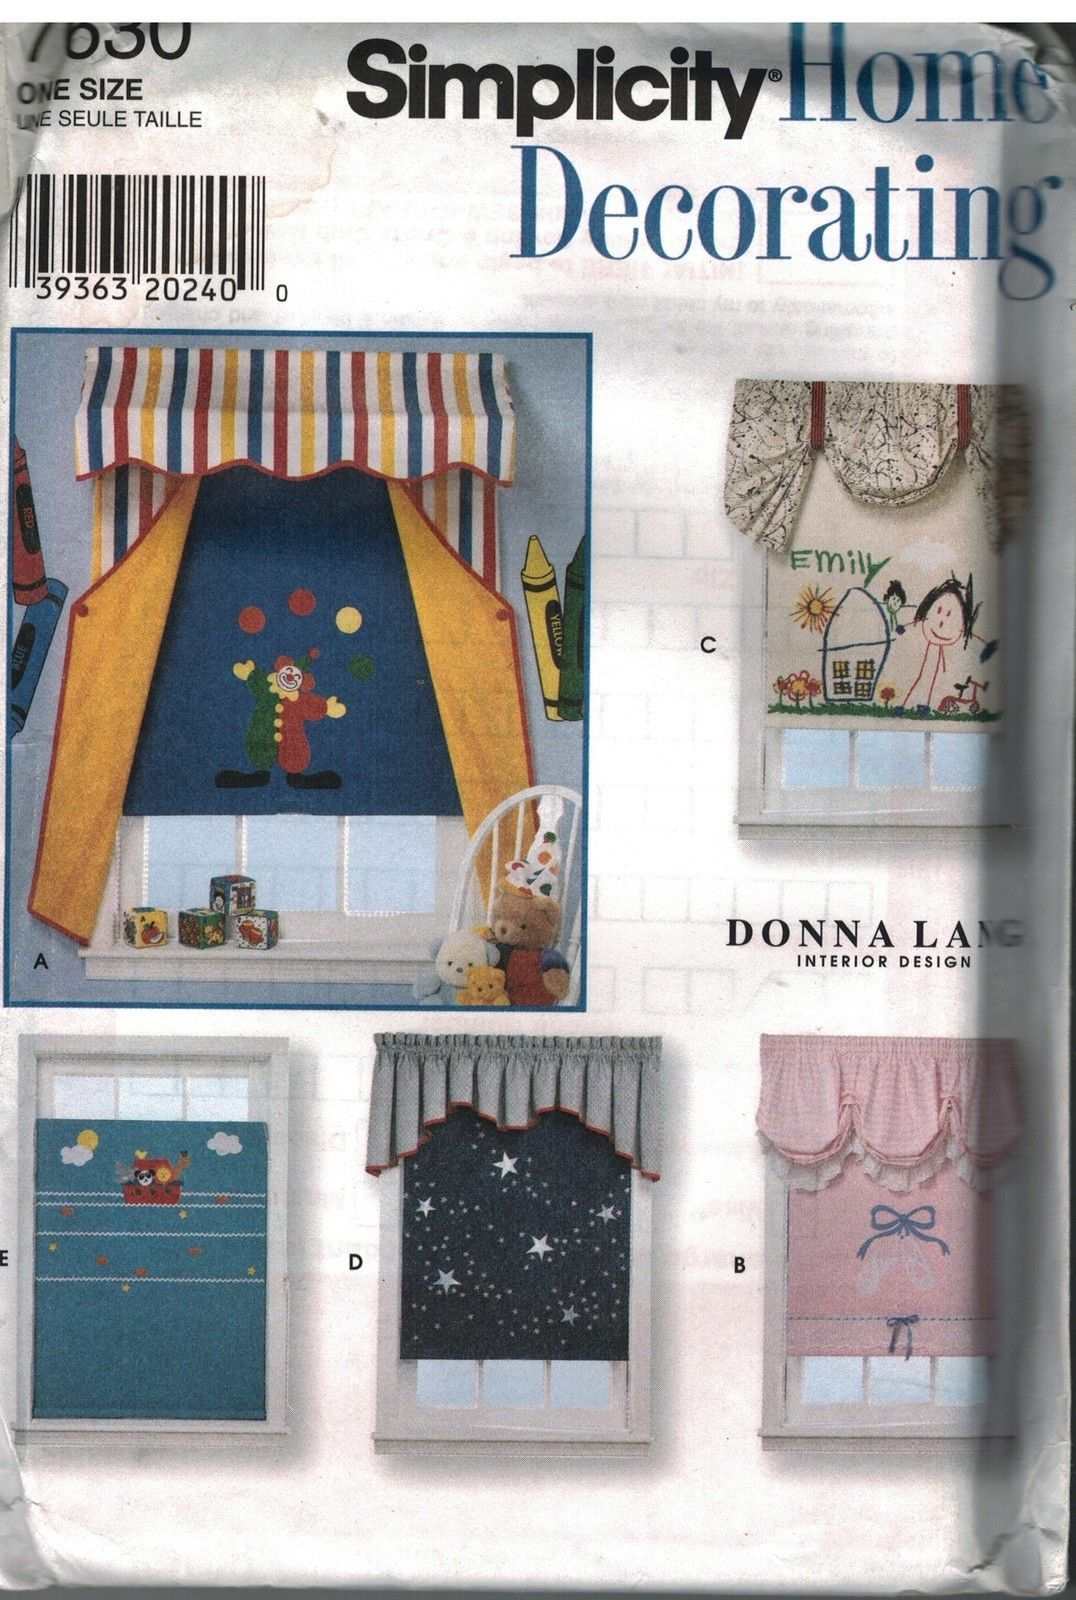 7630 UNCUT Simplicity Sewing Pattern Home Decor Window Treatments Valances Shade